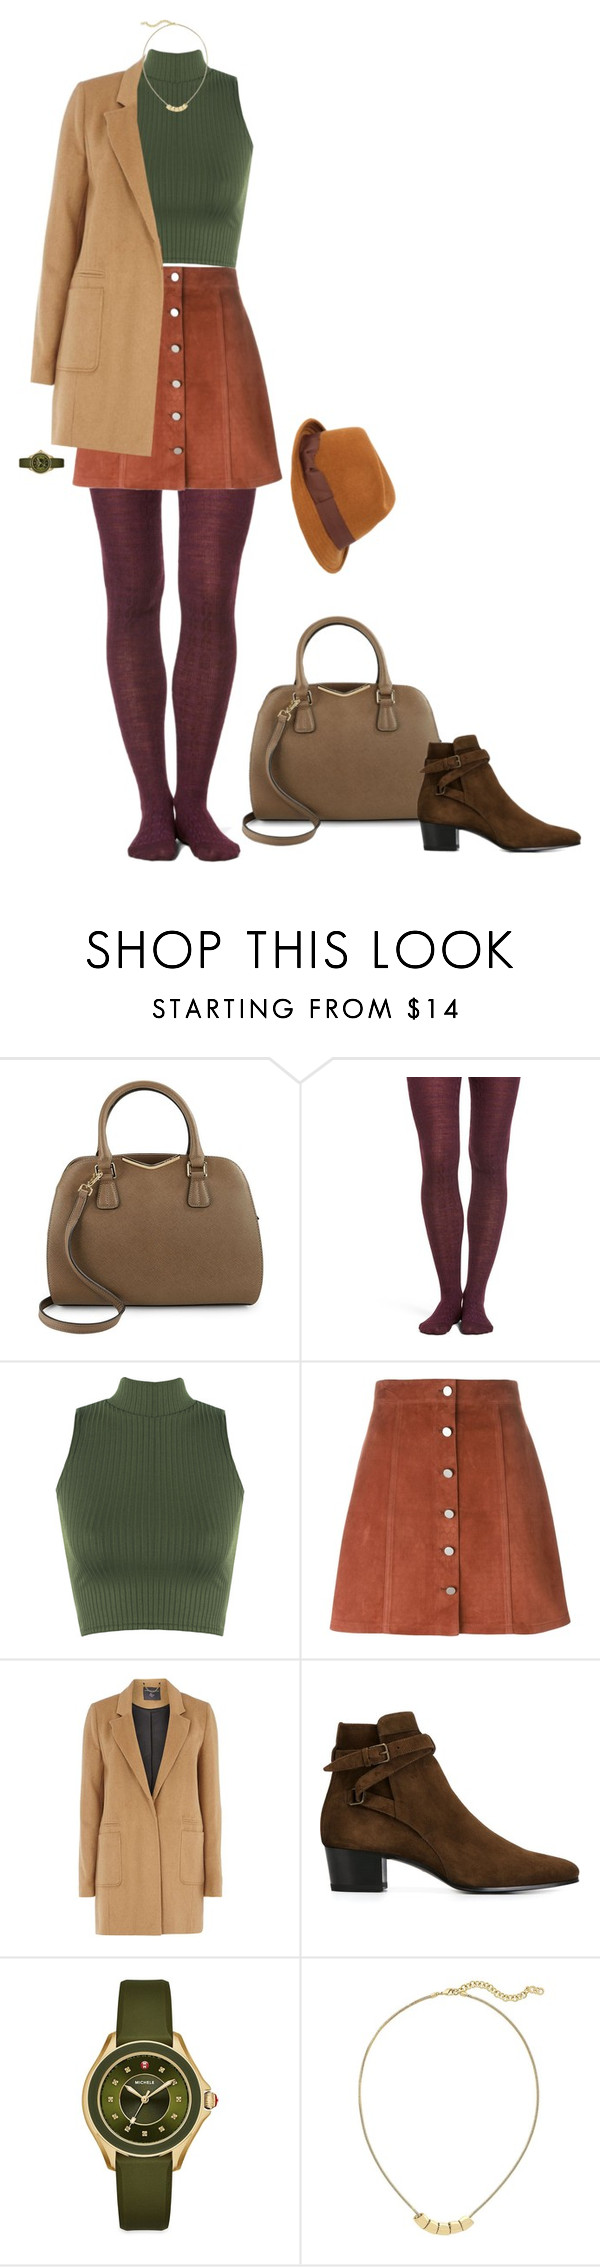 """""""Falling for Fall"""" by silverheartwood ❤ liked on Polyvore featuring Calvin Klein, Smartwool, WearAll, Theory, mel, Yves Saint Laurent, Michele, Cole Haan and FOUR BUTTONS"""